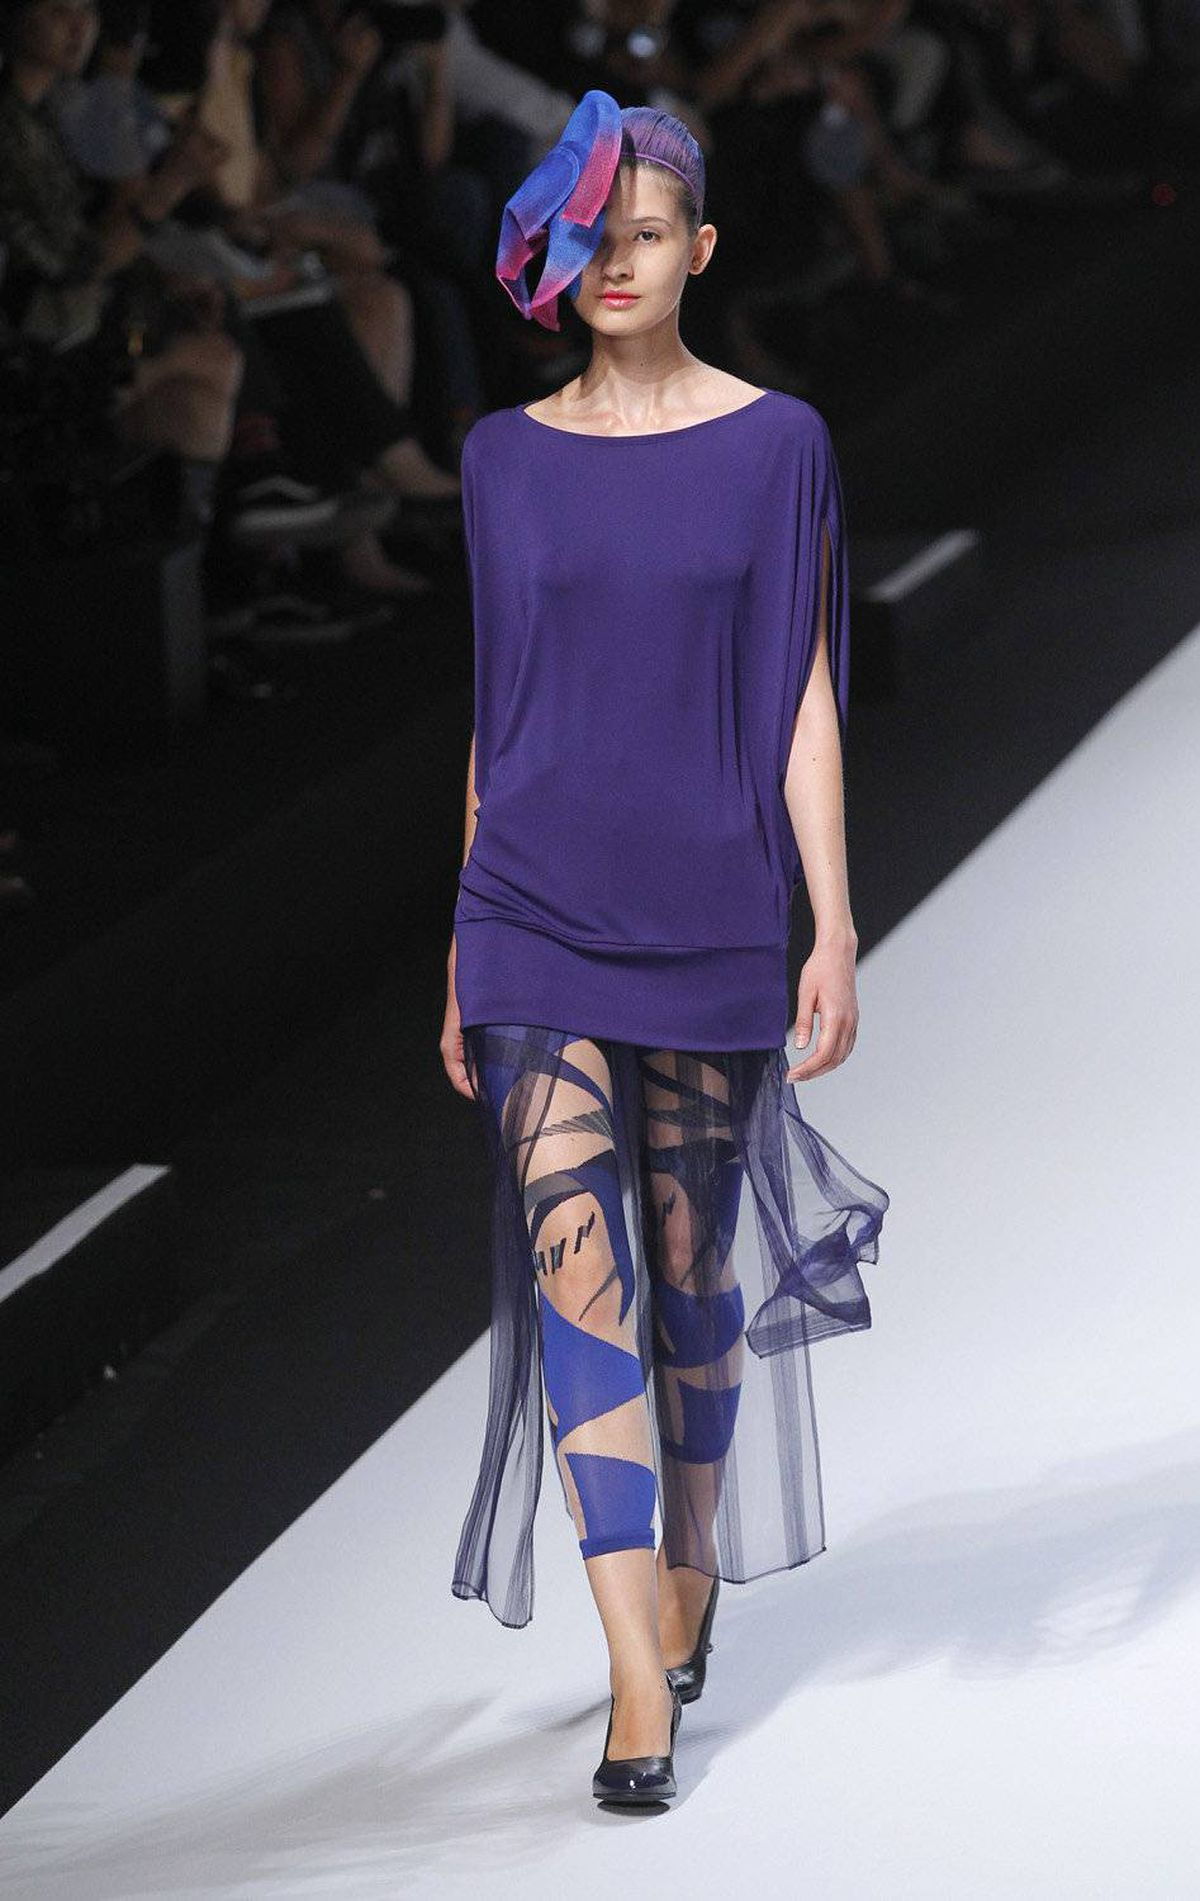 A model presents a creation by Japanese designer Yoshiyuki Miyamar for Issey Miyake during the spring/summer 2012 ready-to-wear collection show, on October 2, 2011 in Paris.